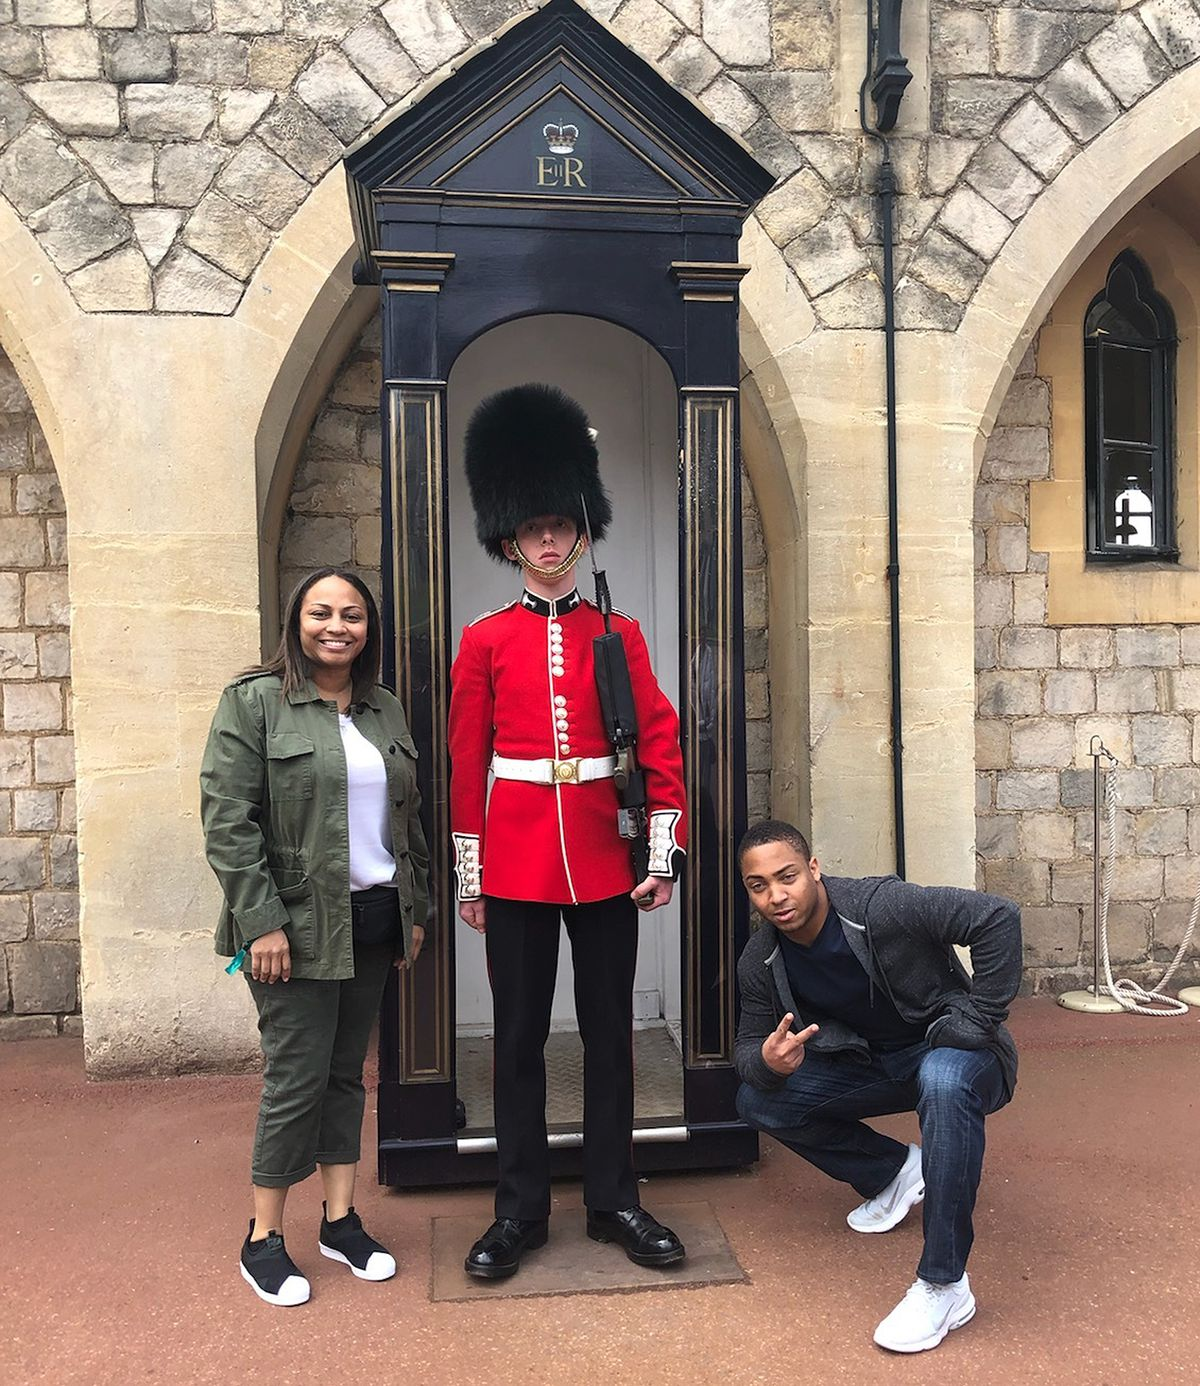 Michael Isaiah Nance with his mother, Shawn Gregoire, visited London in June.